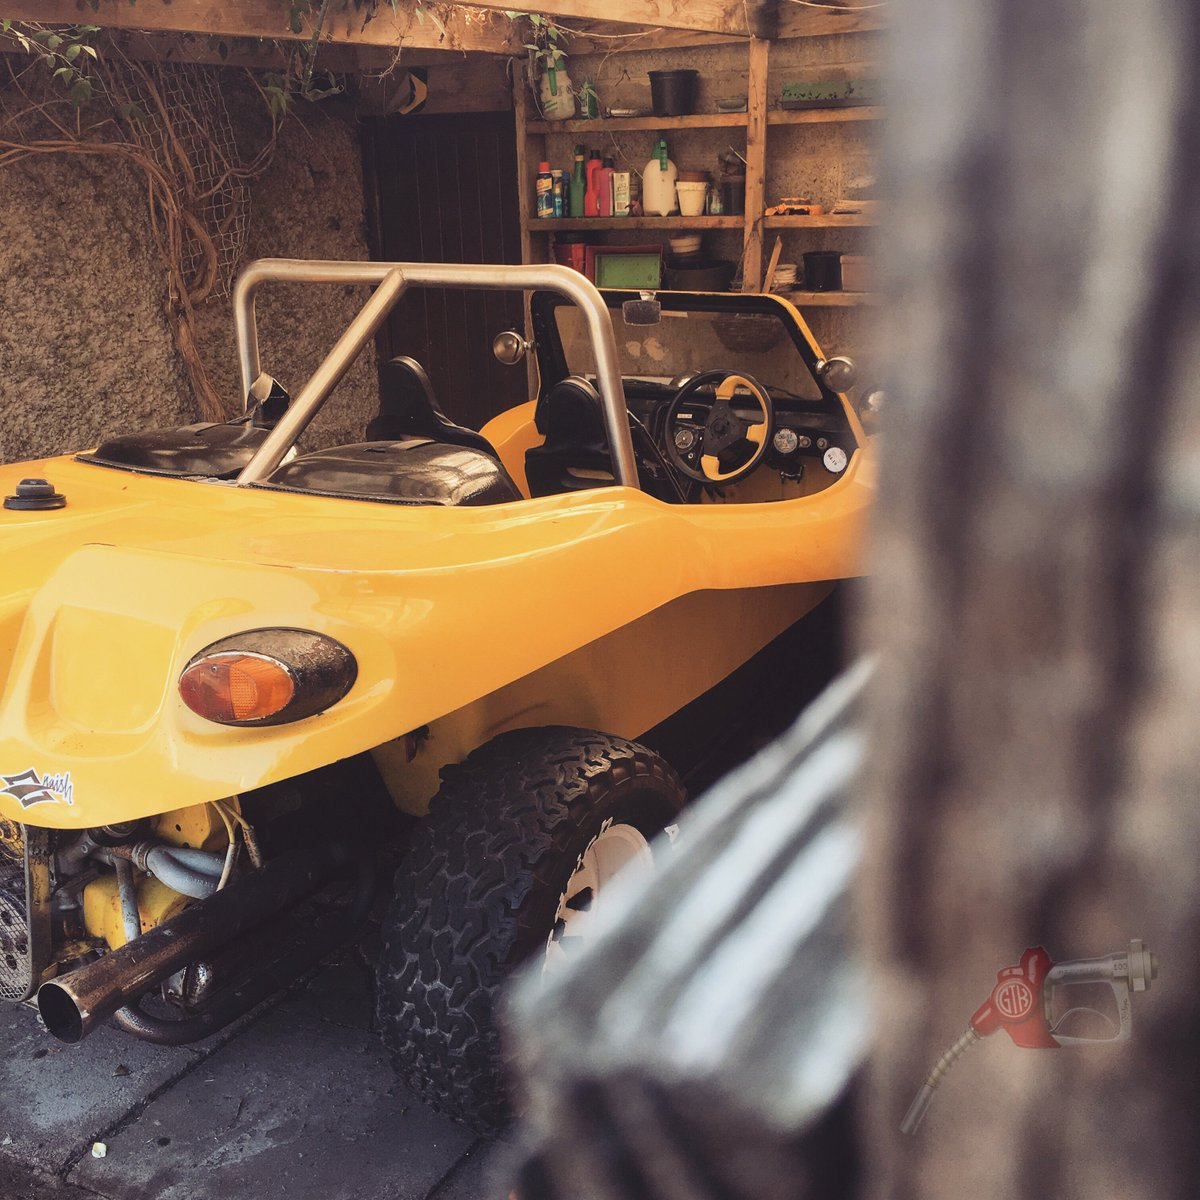 If the weather plays ball the plan is to squeeze a pair of these little tubs into a feature to come... #dunebuggy #beachbuggy #thomascrownaffair #meyersmanx #vw #flatfour #sandrail #summerstyle #classicfun #retrobuild #soupclassicmotoring<br>http://pic.twitter.com/APQO3Q1Chn